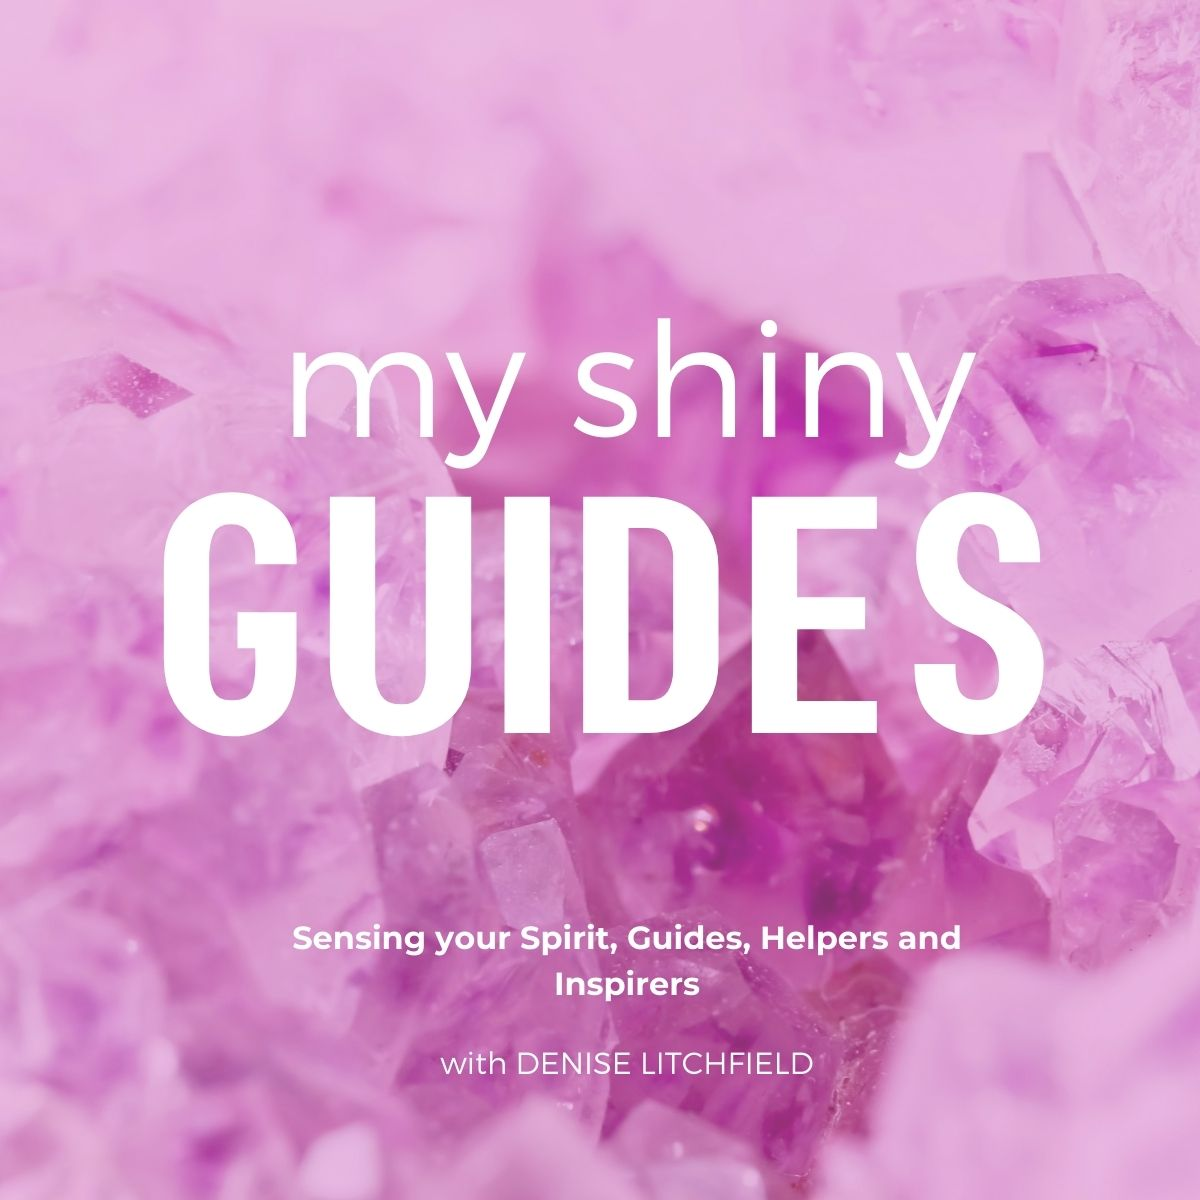 My Shiny Guides